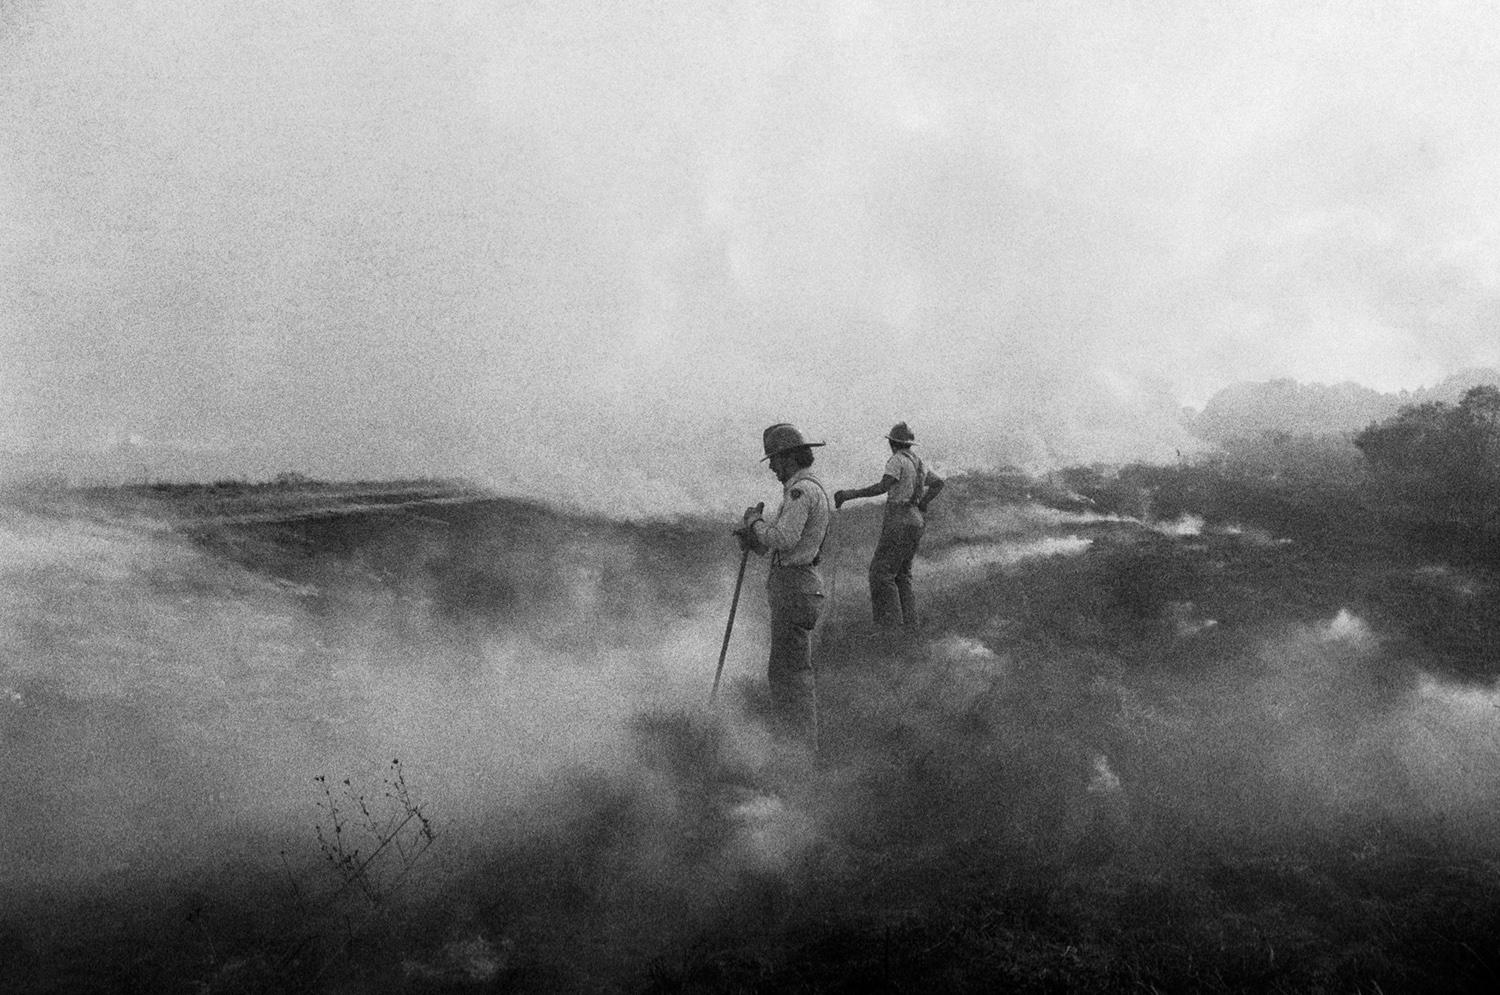 Brush Fire Jackson, MS 1976